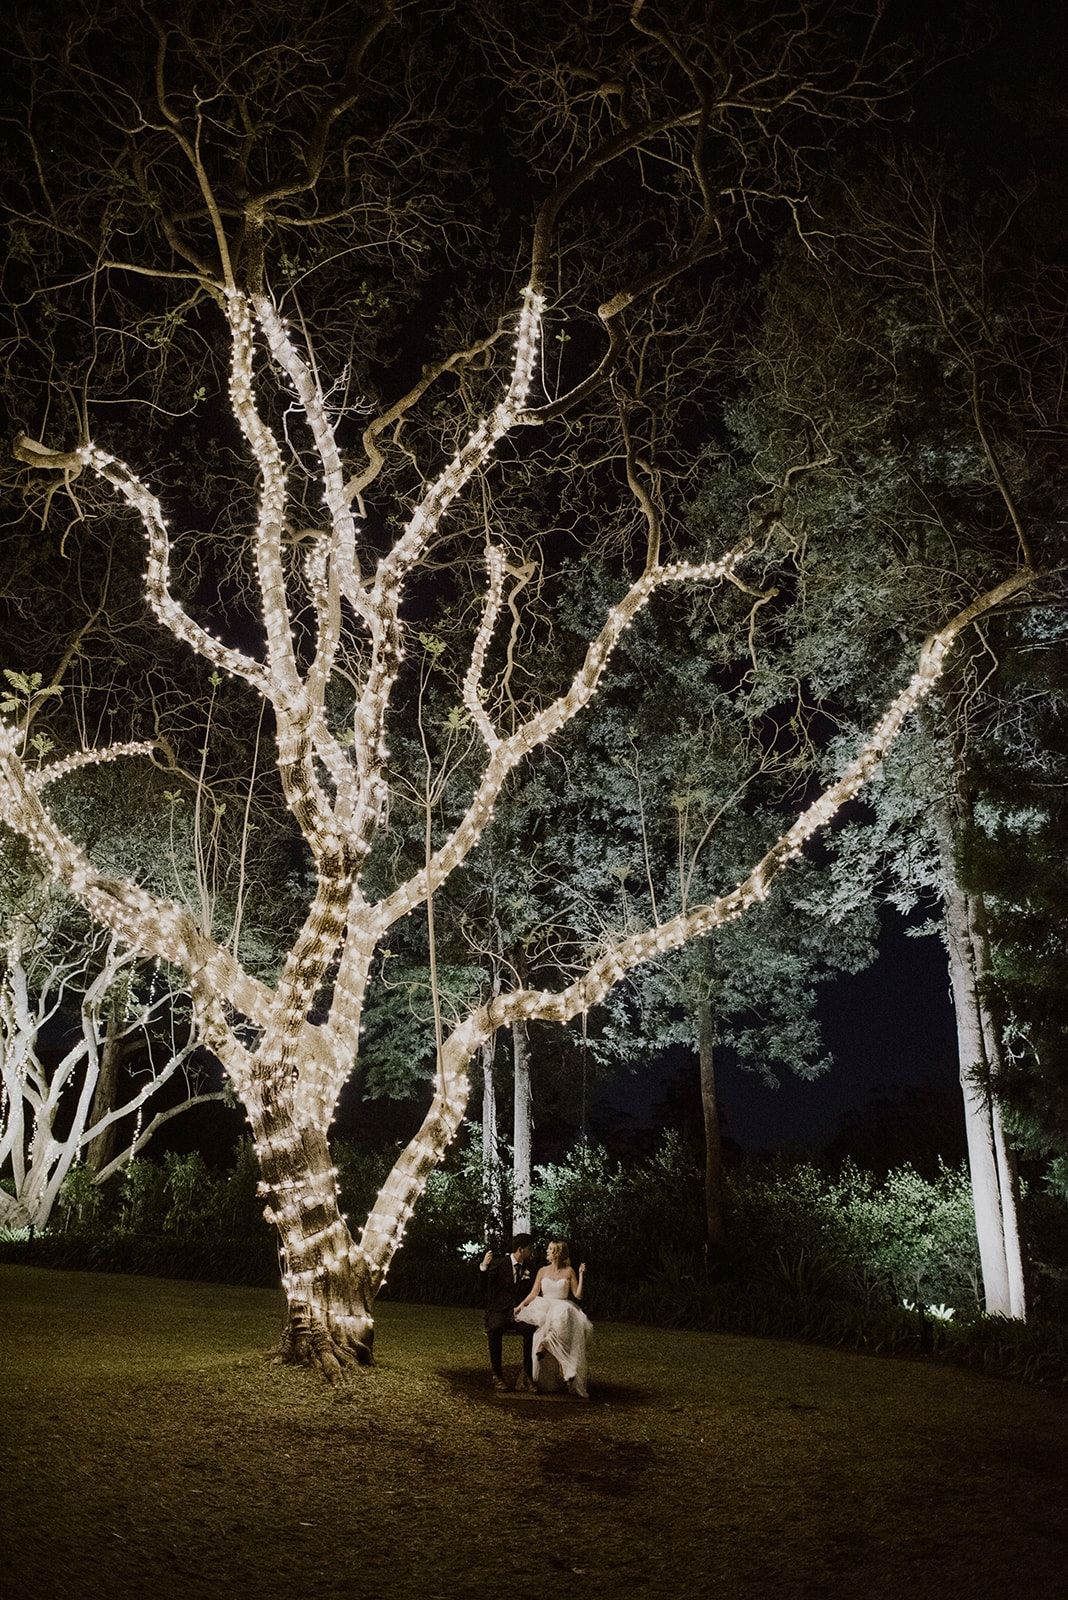 Tree covered in fairylights with couple on swing